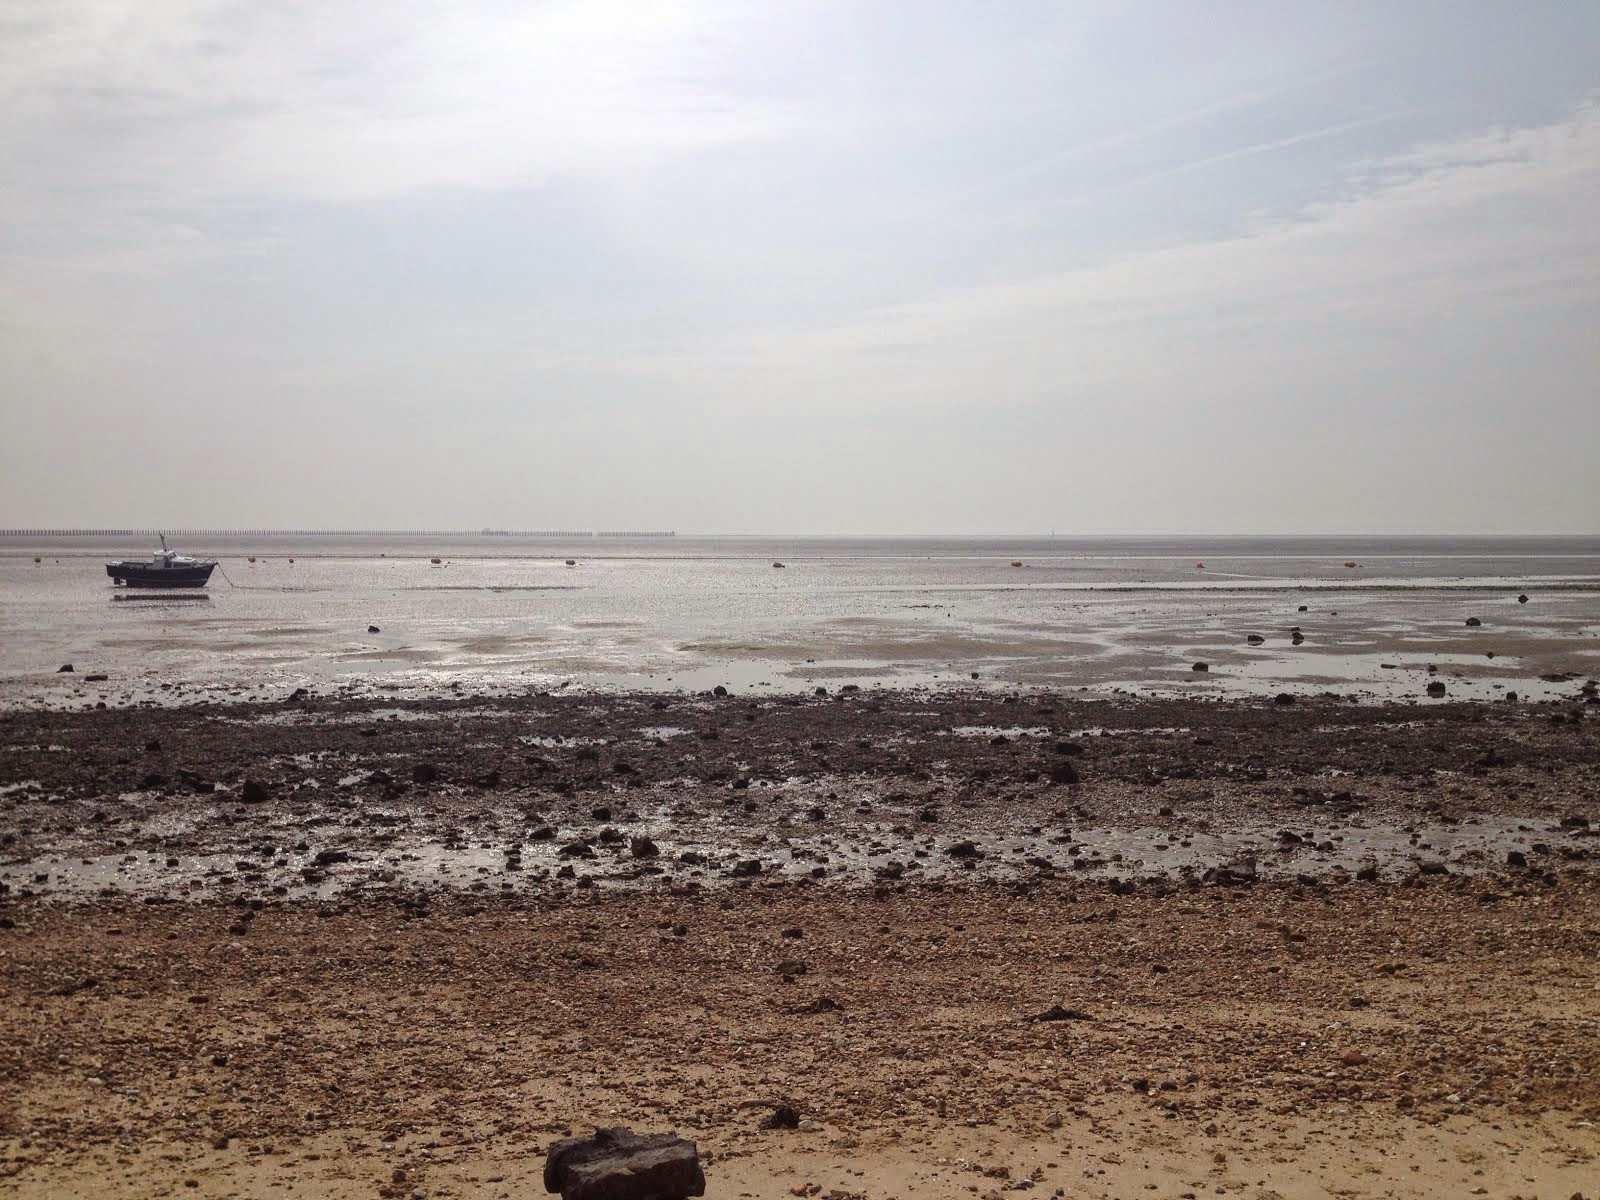 A landscape shot of the coast in Shoeburyness